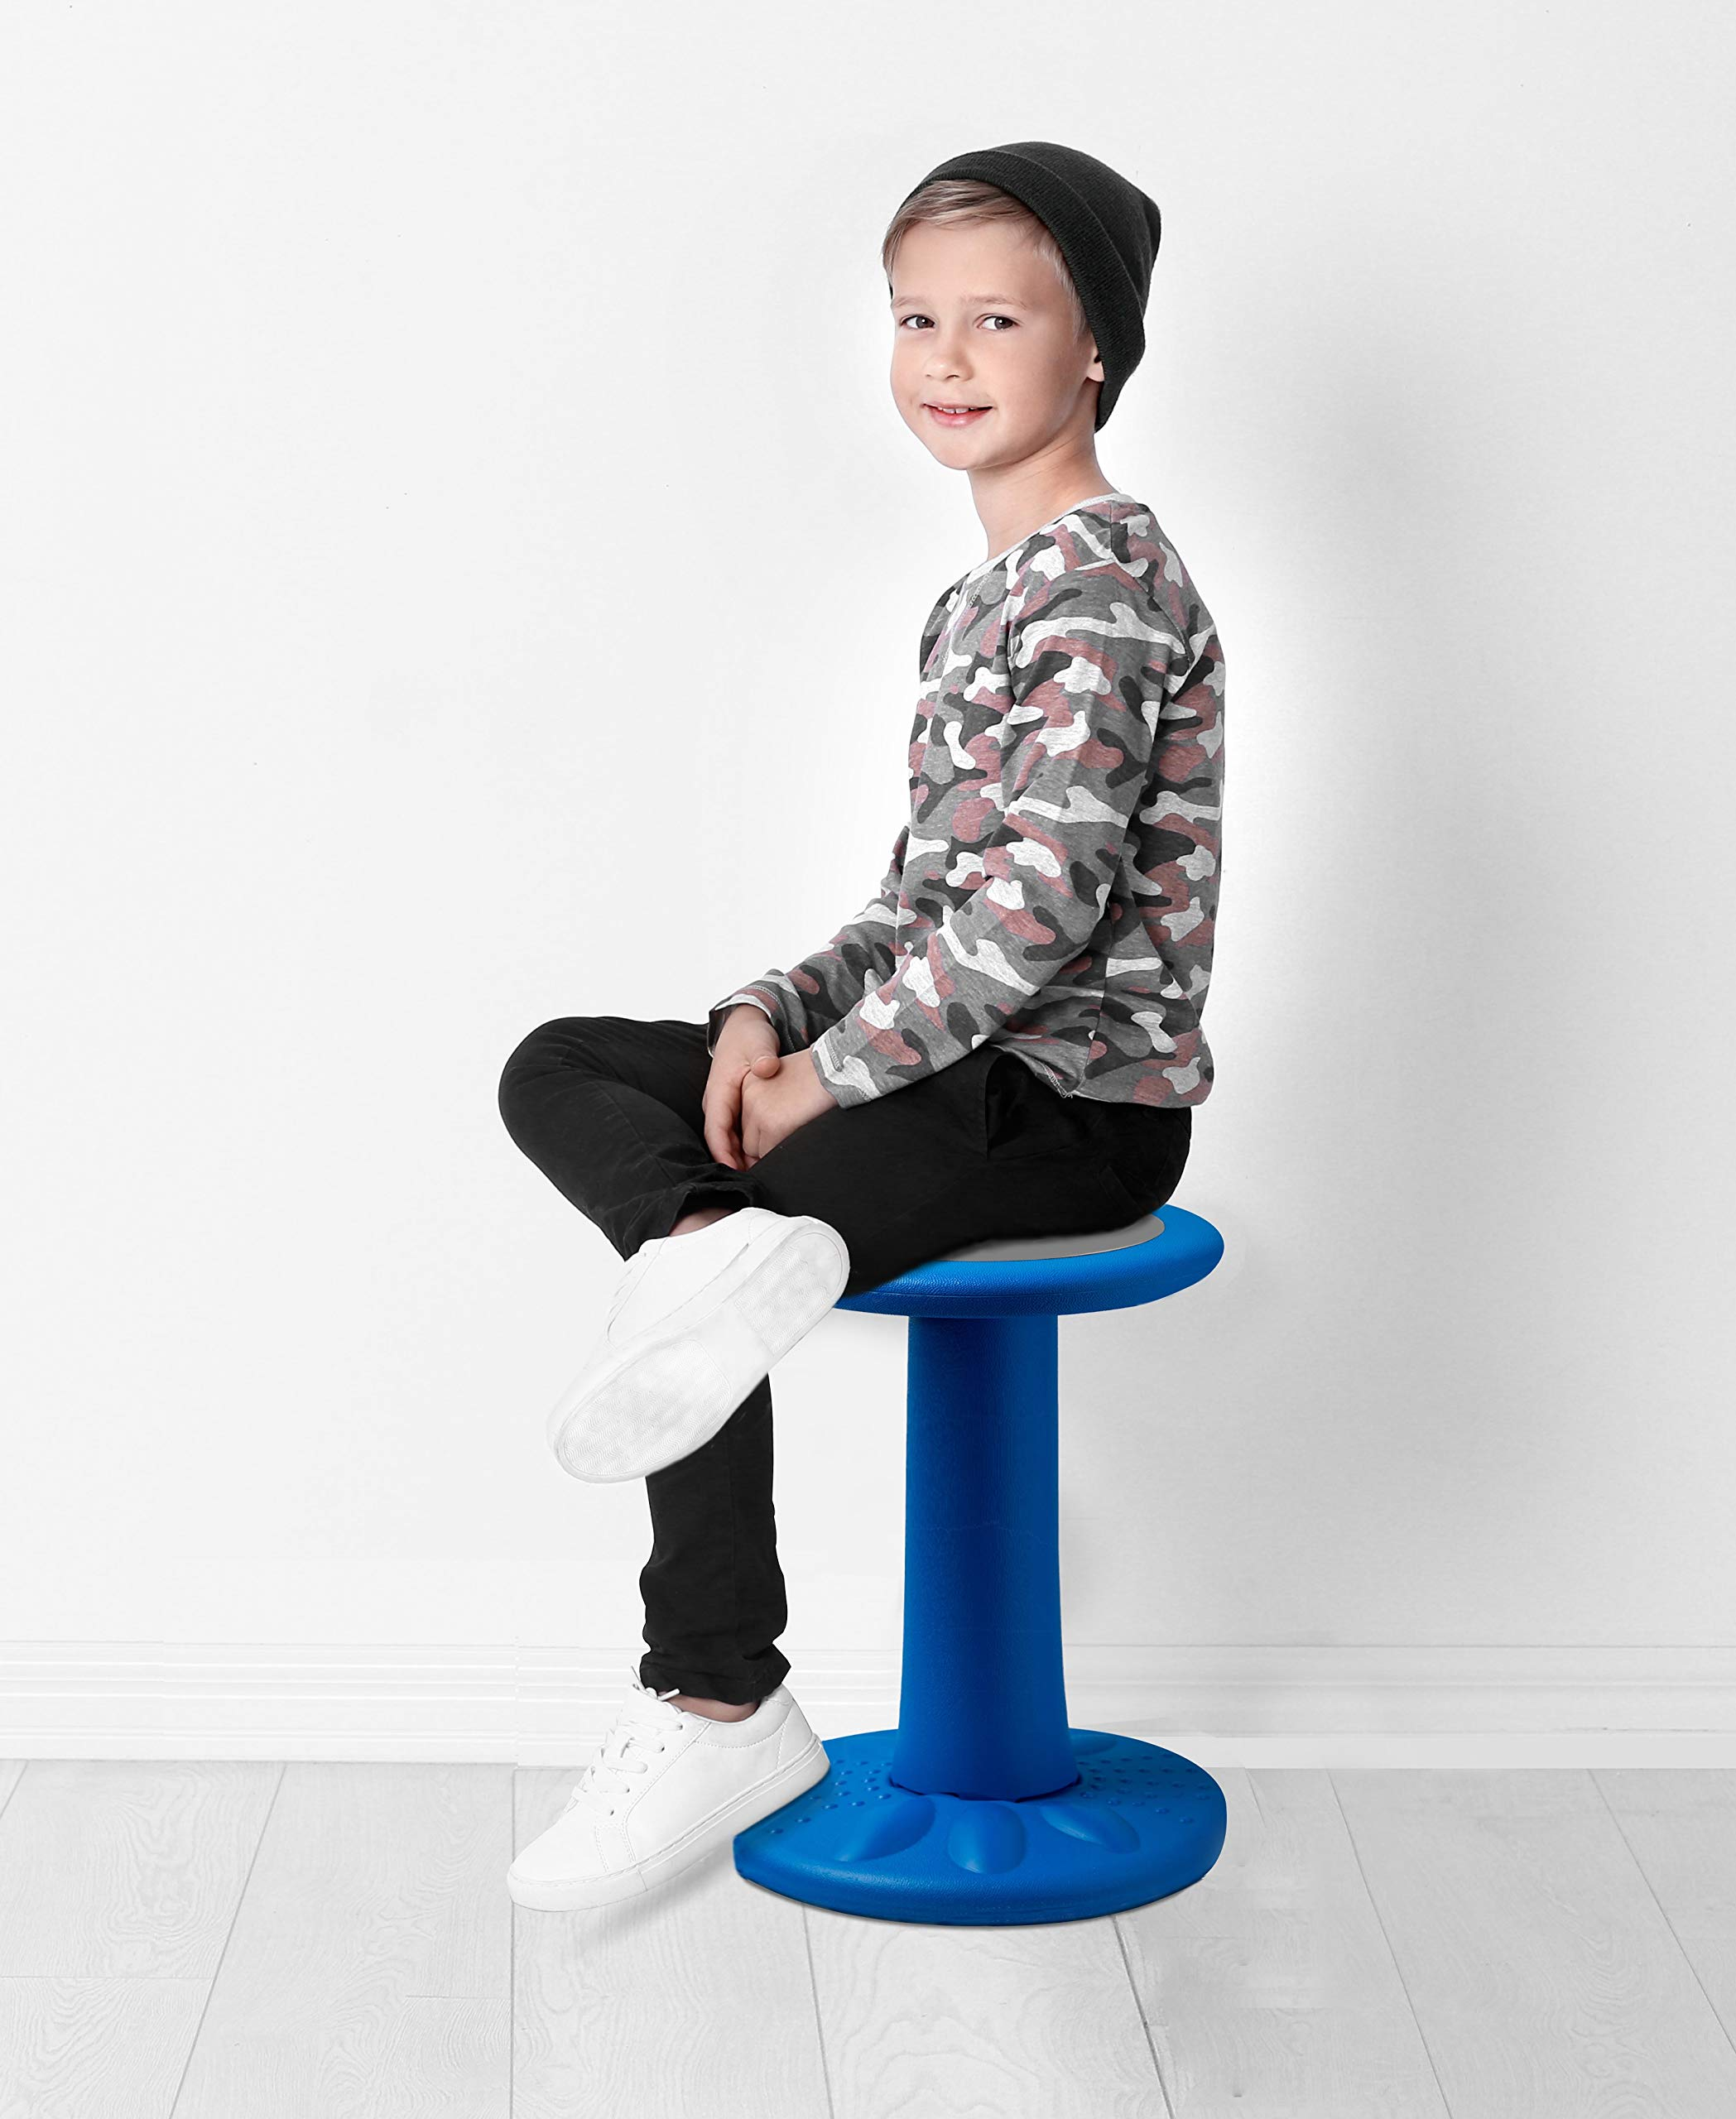 Active Kids Chair - Wobble Chairs Juniors/Pre-Teens (Grades 3-7) - Children Who Can't Sit Still - Great 17.75'' Wobble Chair Kids ADD/ADHD - Corrects Posture | Blue - Age Range 7-12y by Comfify (Image #5)